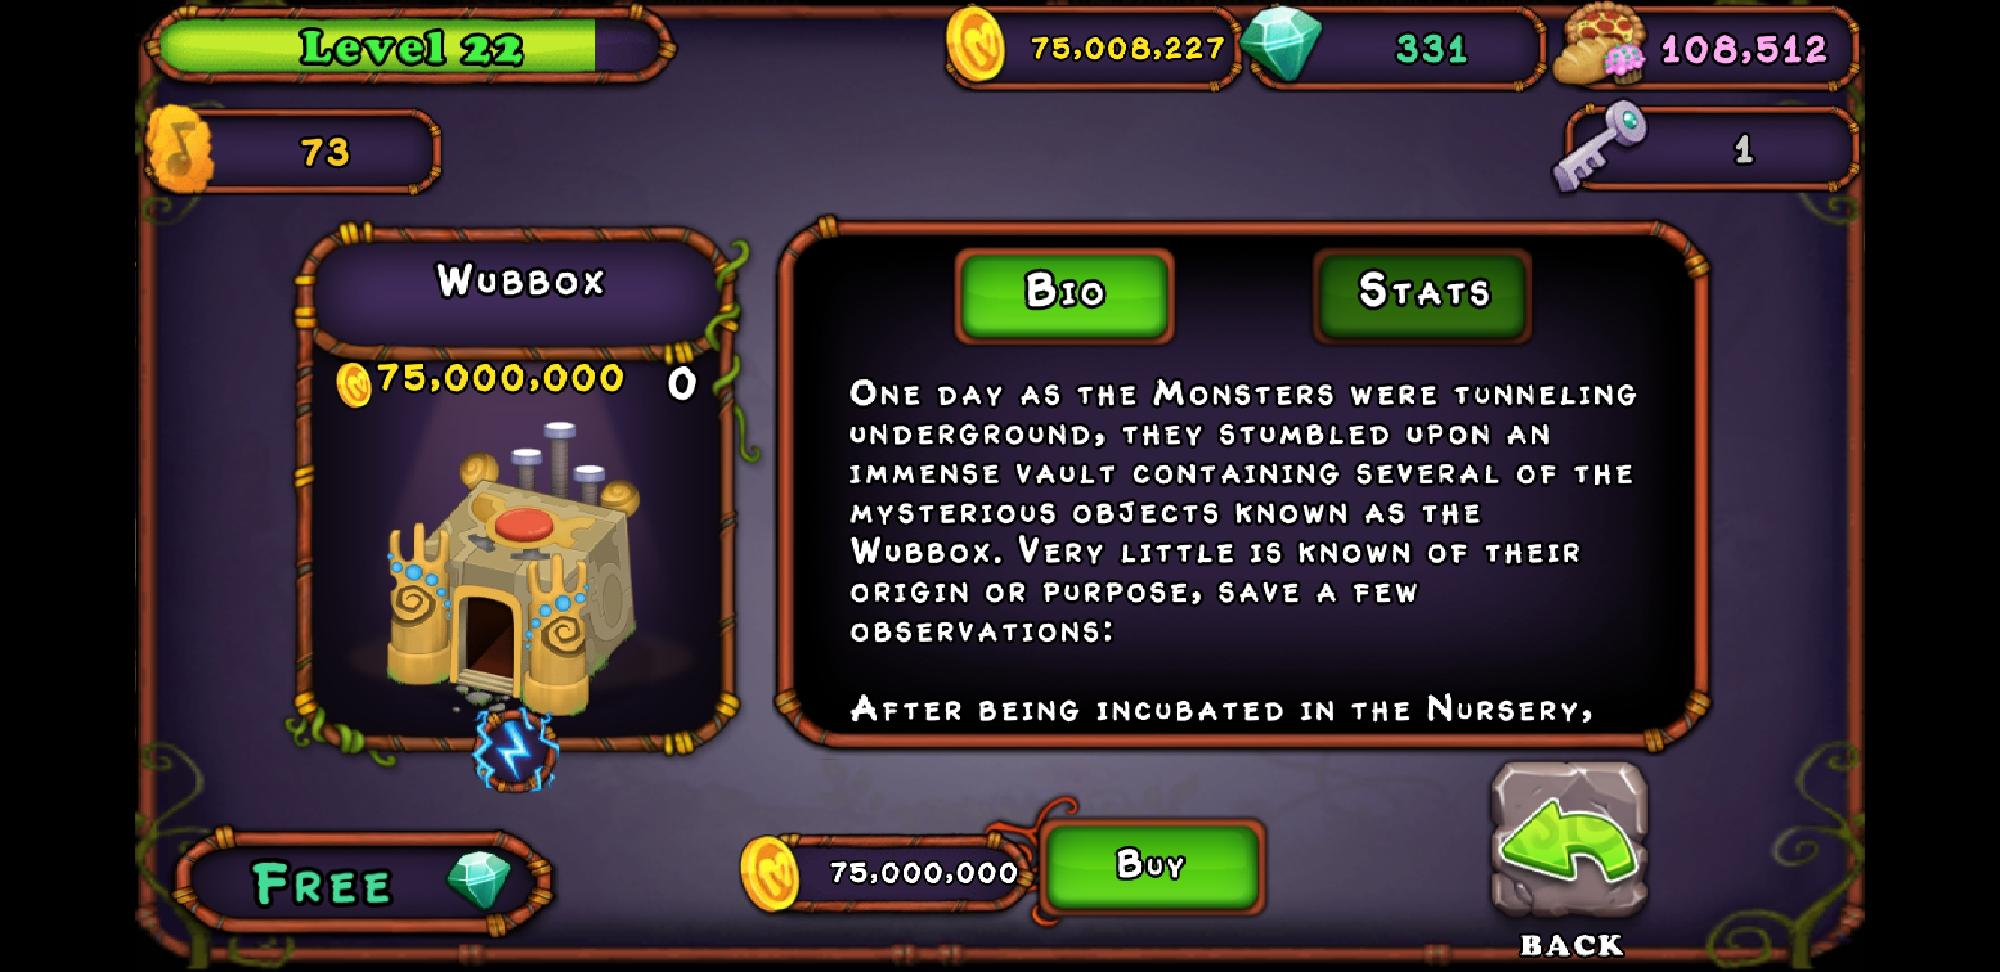 I have enough for my first Wubbox!